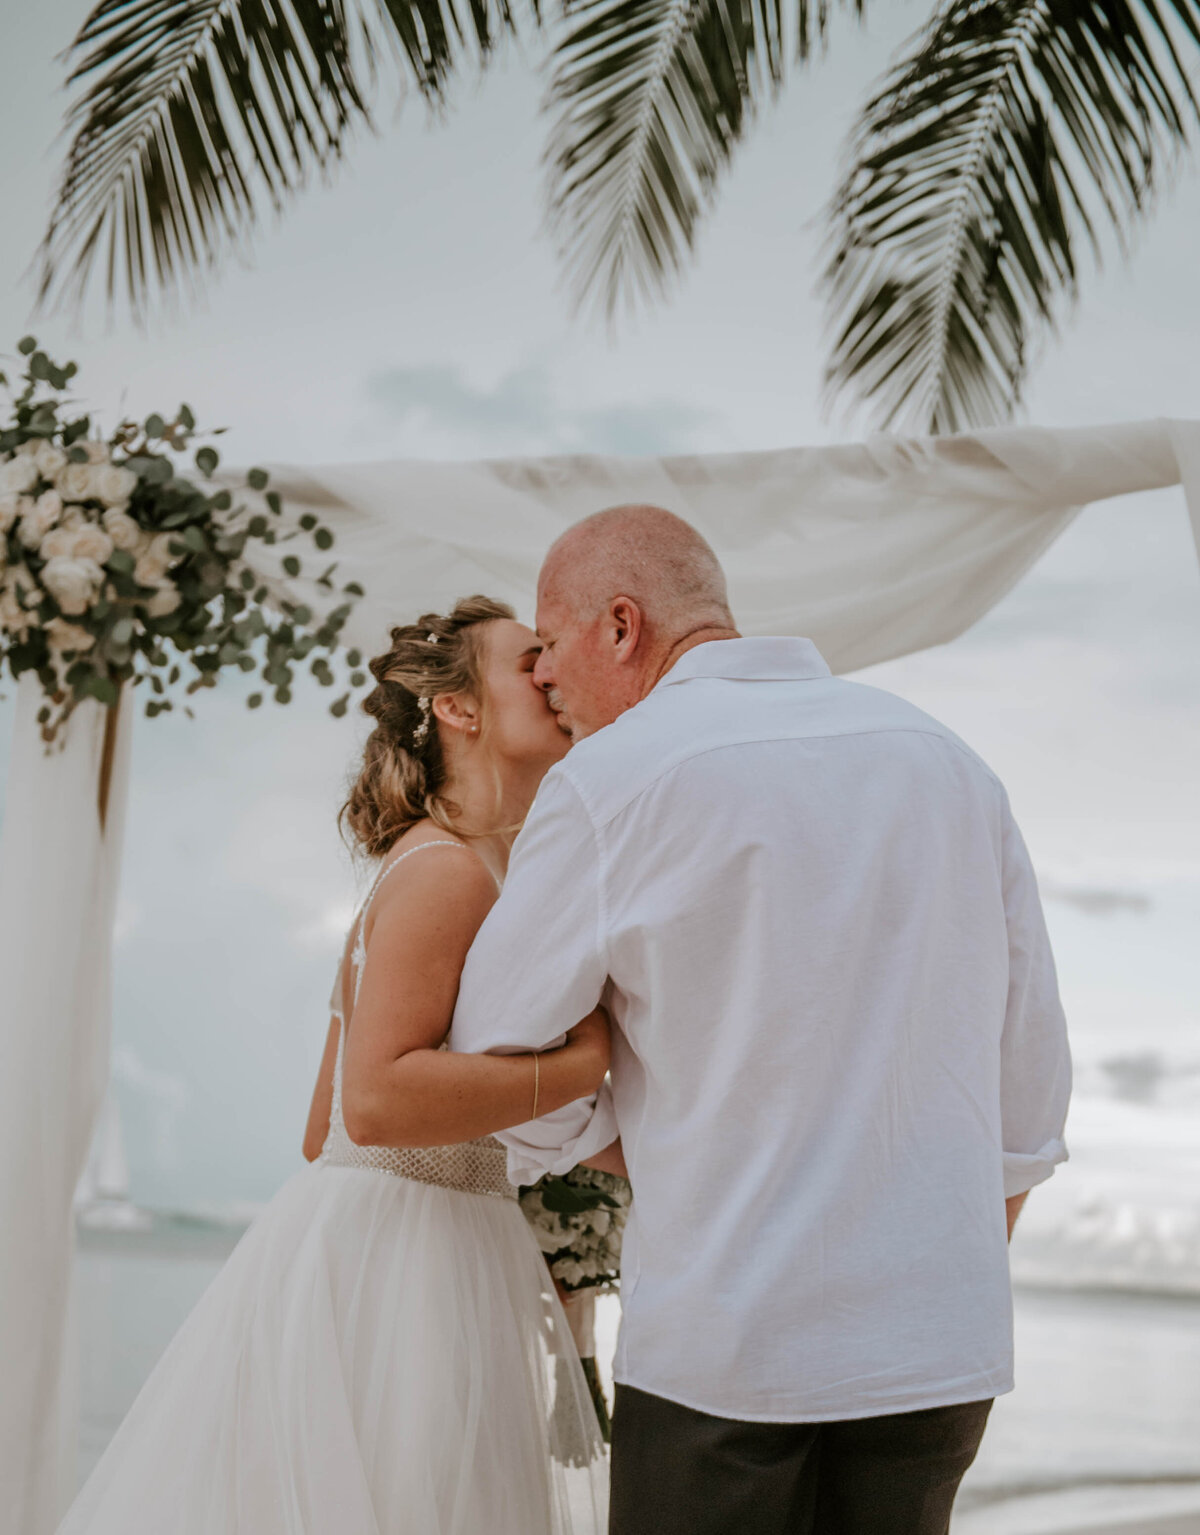 isla-mujeres-wedding-photographer-guthrie-zama-mexico-tulum-cancun-beach-destination-1018